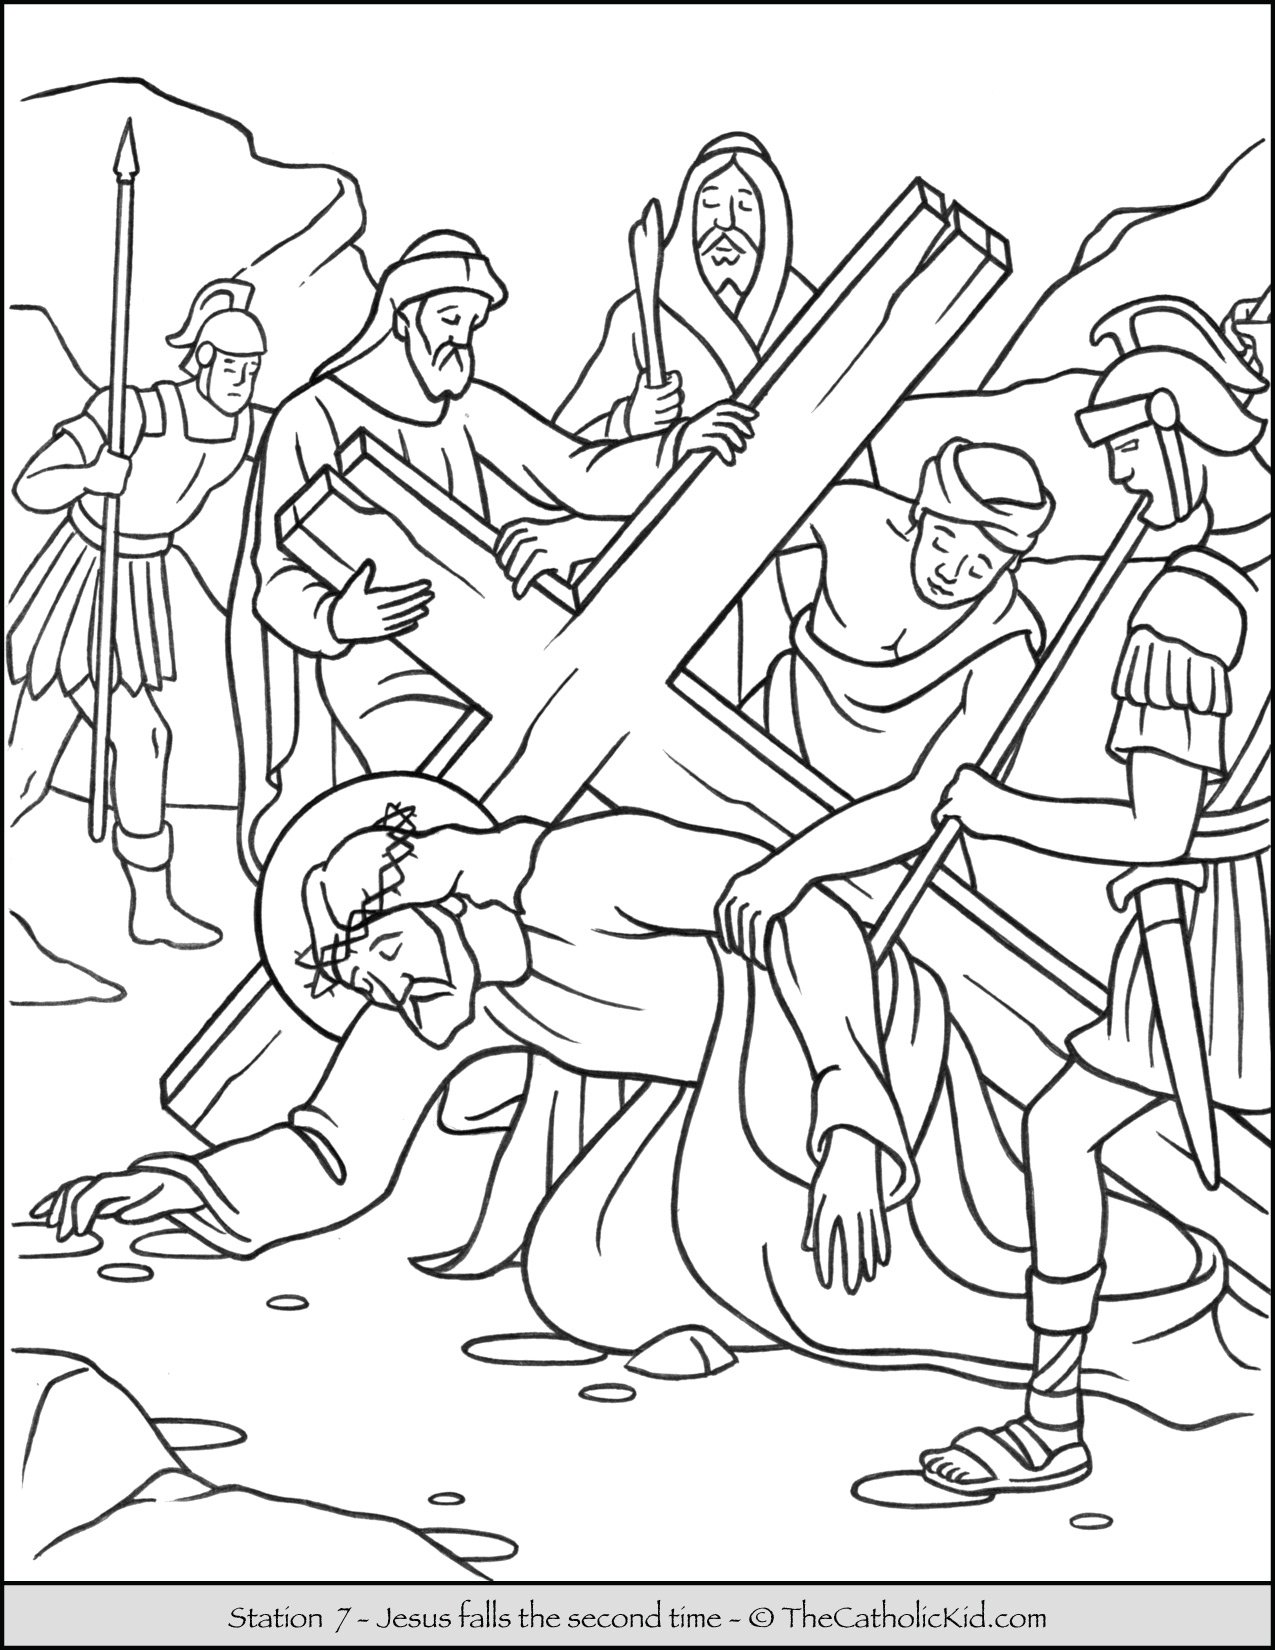 lent archives the catholic kid coloring and games for children stations of cnt mls coloring pages Catholic Coloring Page